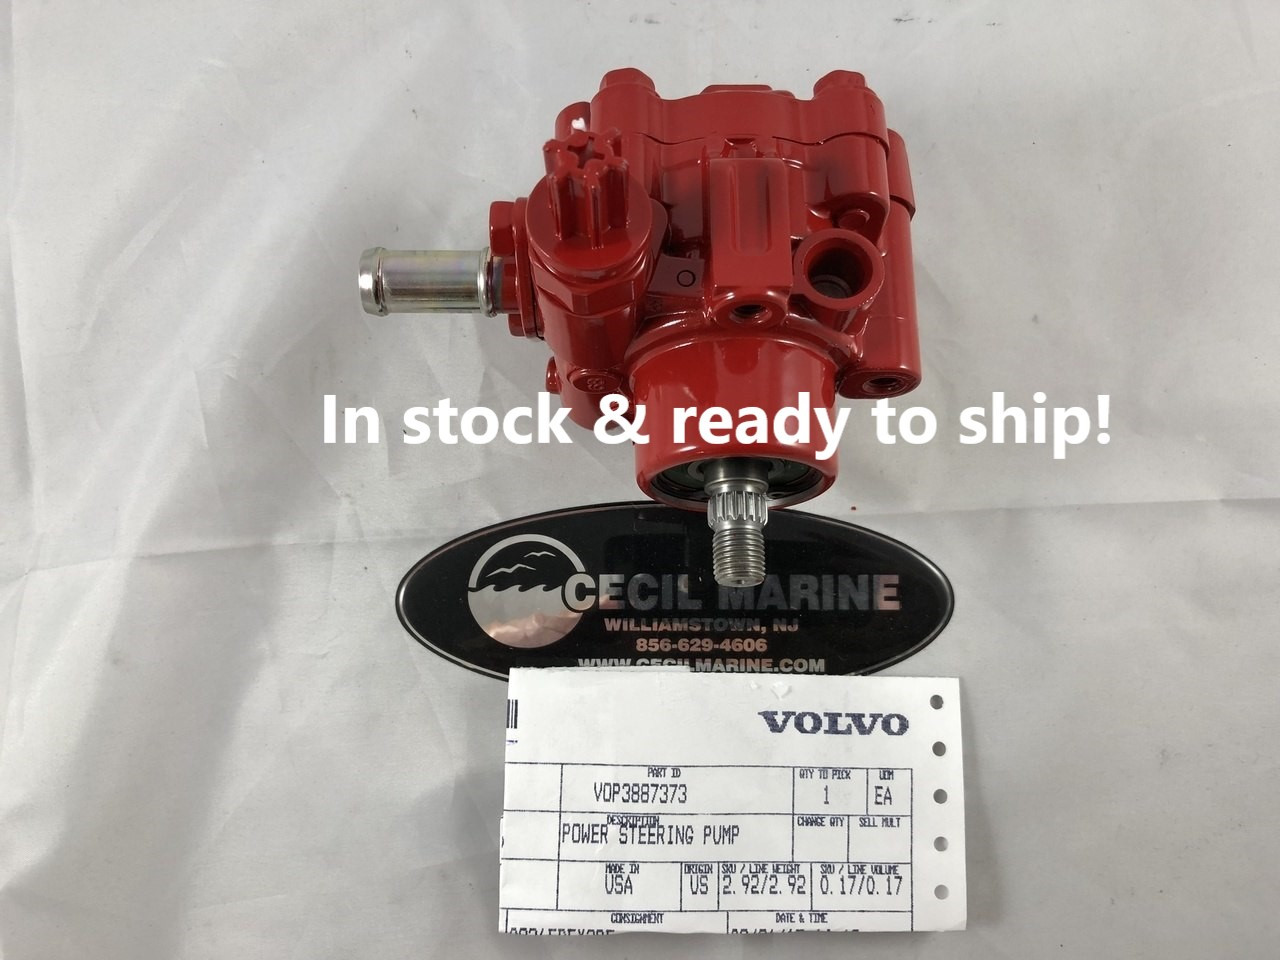 medium resolution of  439 47 genuine volvo power steering pump 3887373 in stock ready to ship